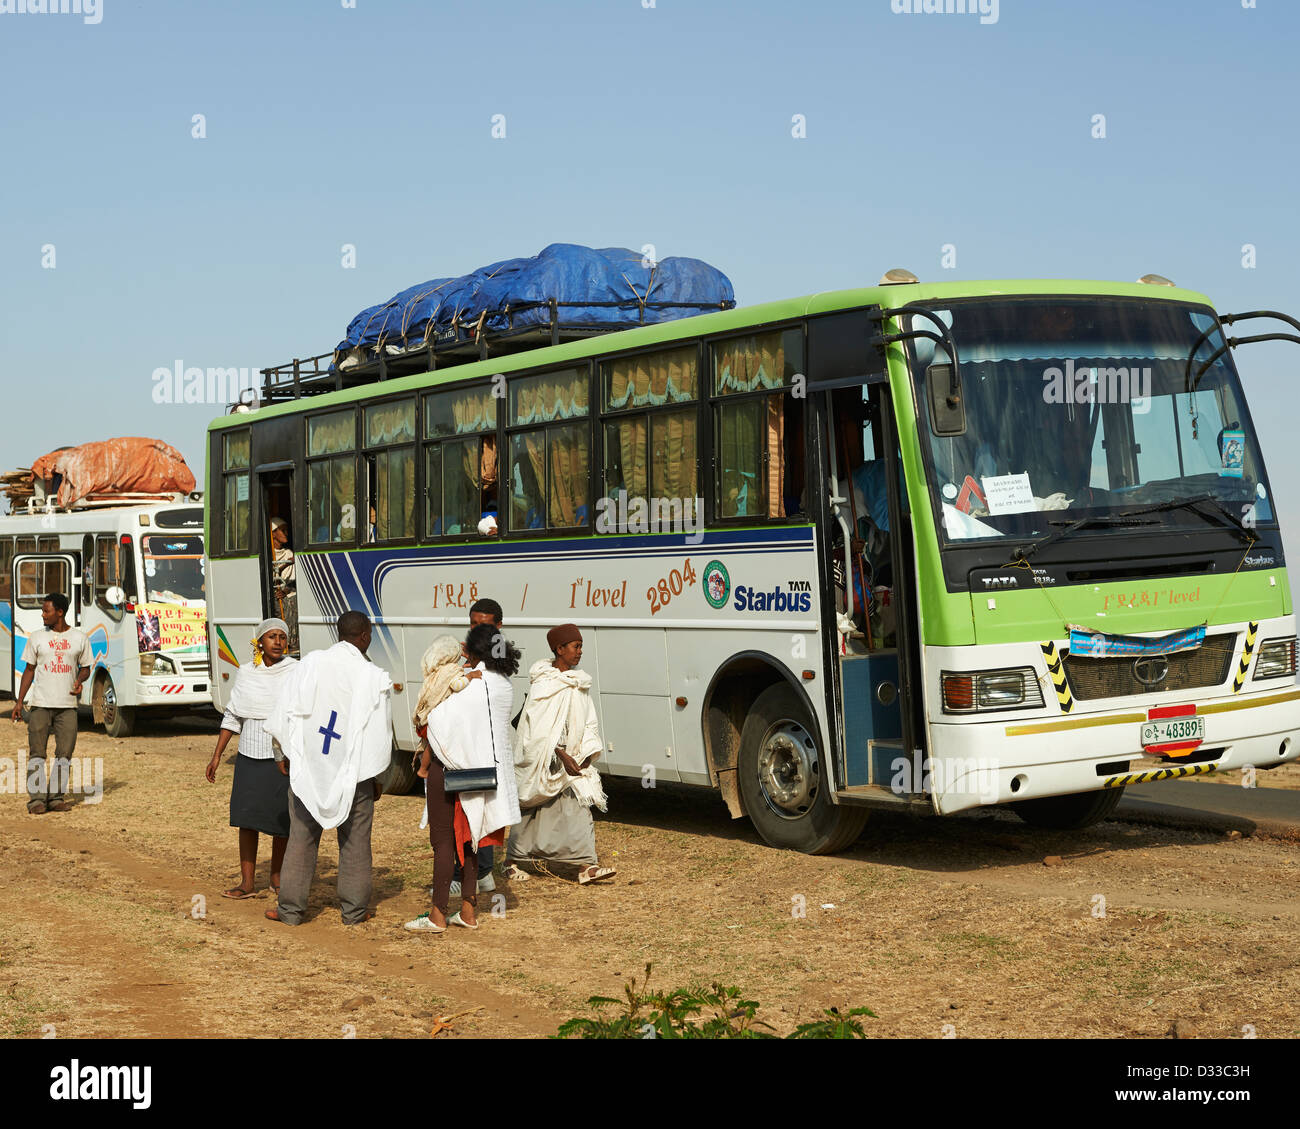 Pilgrims talk to a priest outside the caravan bus at the Zara Church Forest in Ethiopia - Stock Image